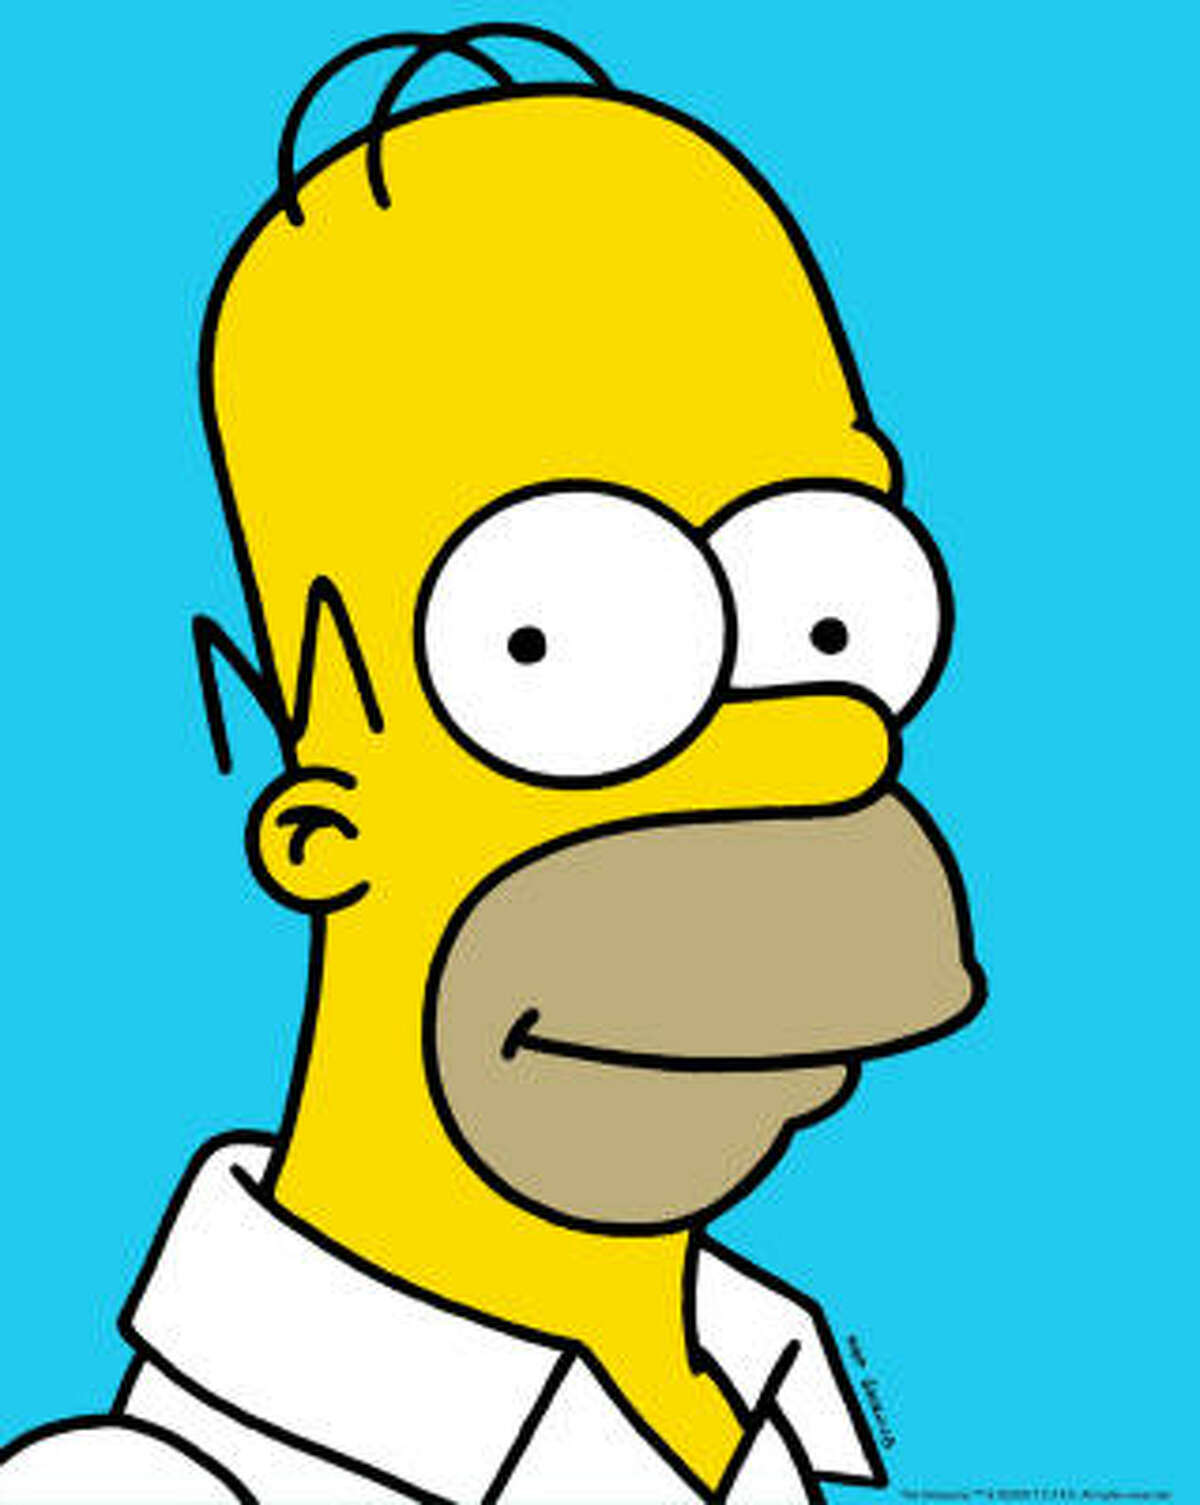 Homer Simpson | The Simpsons